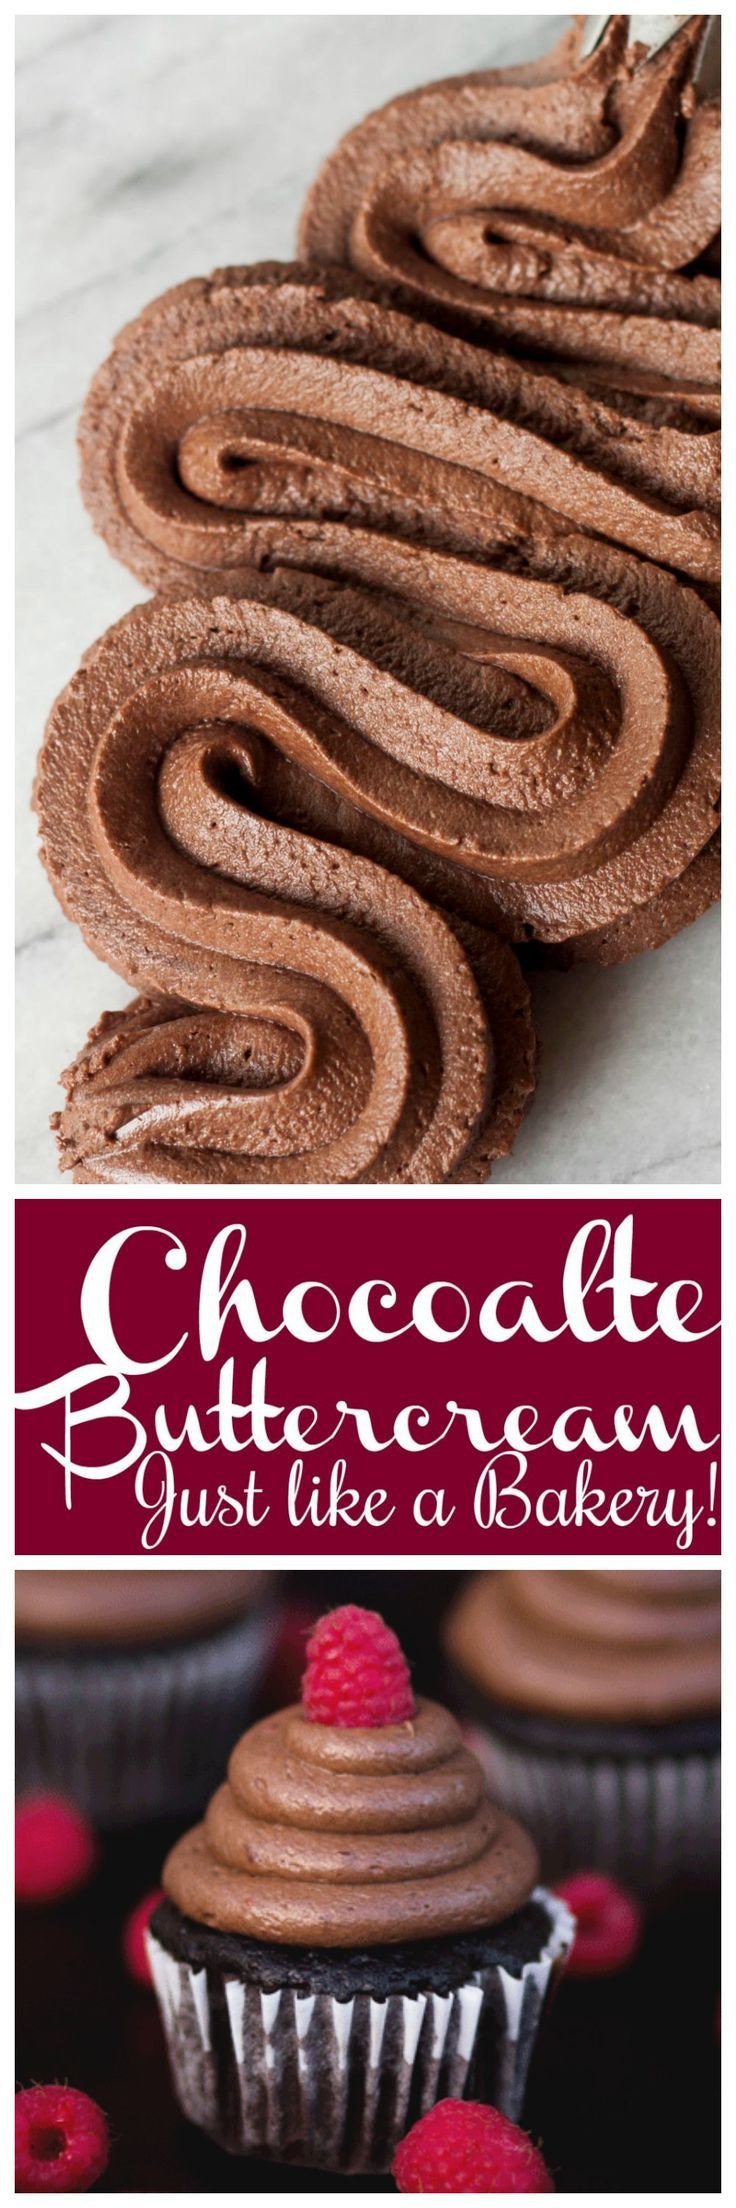 Chocolate buttercream that is smooth and delicious! Perfect for cakes, cupcakes, and filling!